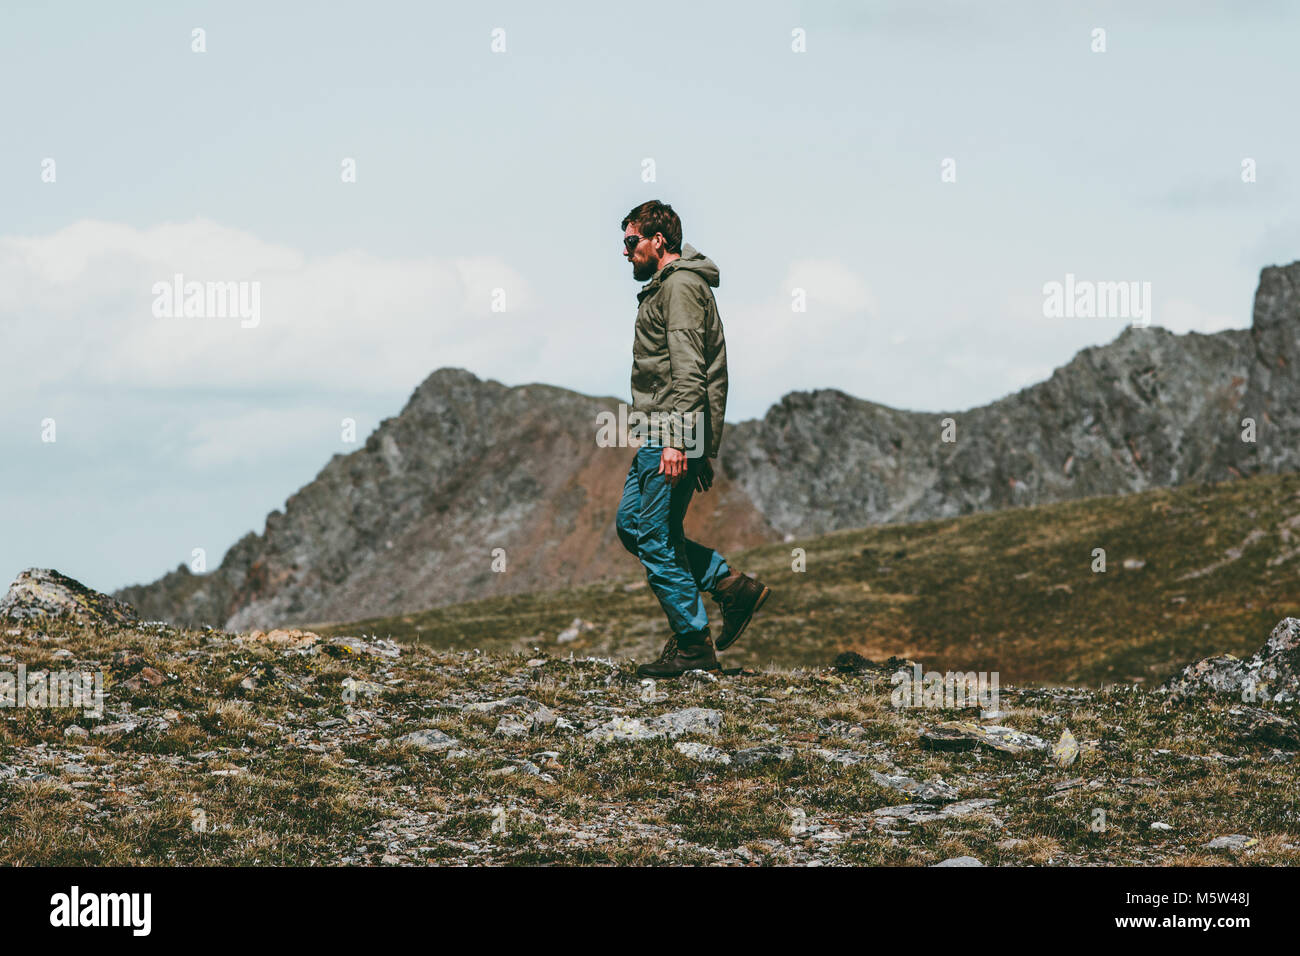 Man walking alone in scandinavian mountains Travel Lifestyle concept traveler outdoor wild nature - Stock Image